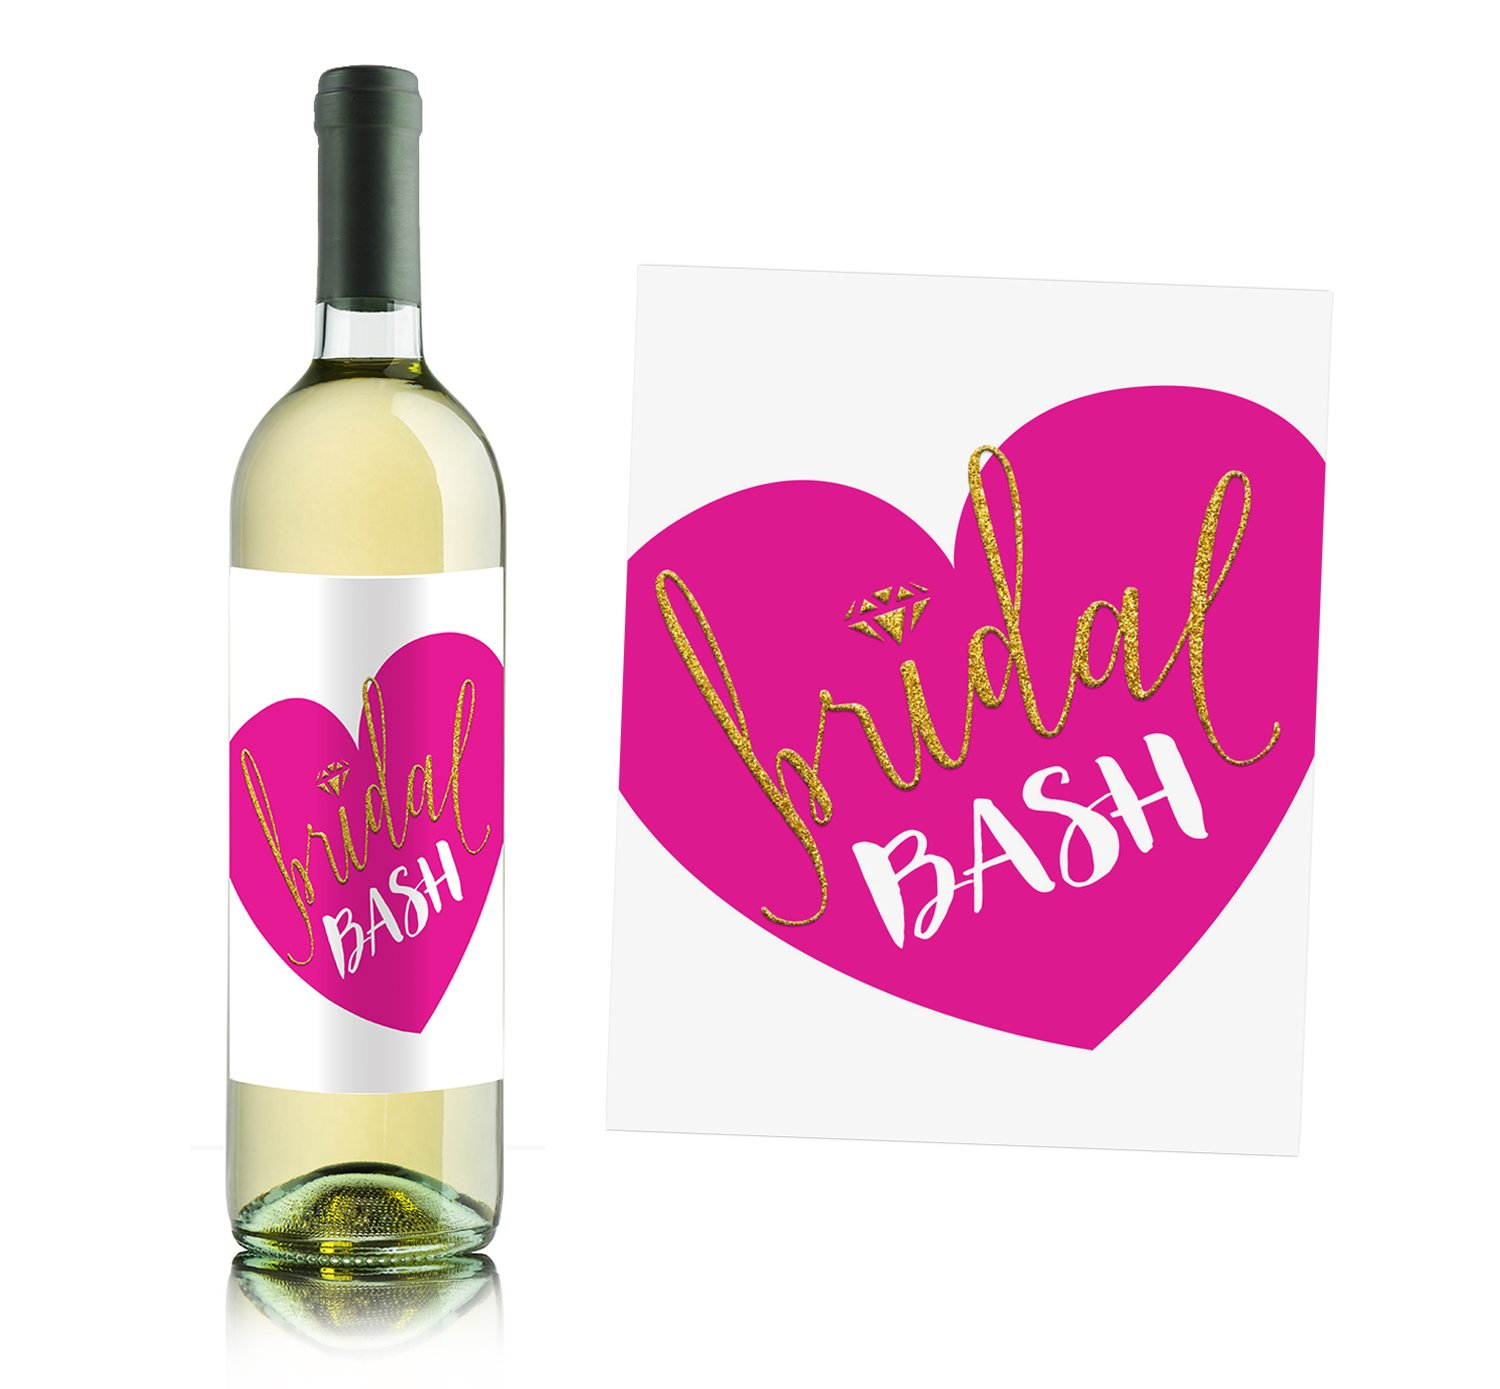 Girls Night out - Bachelorette Party Wine Bottle Labels (set of 4) by Sblabels (Image #3)